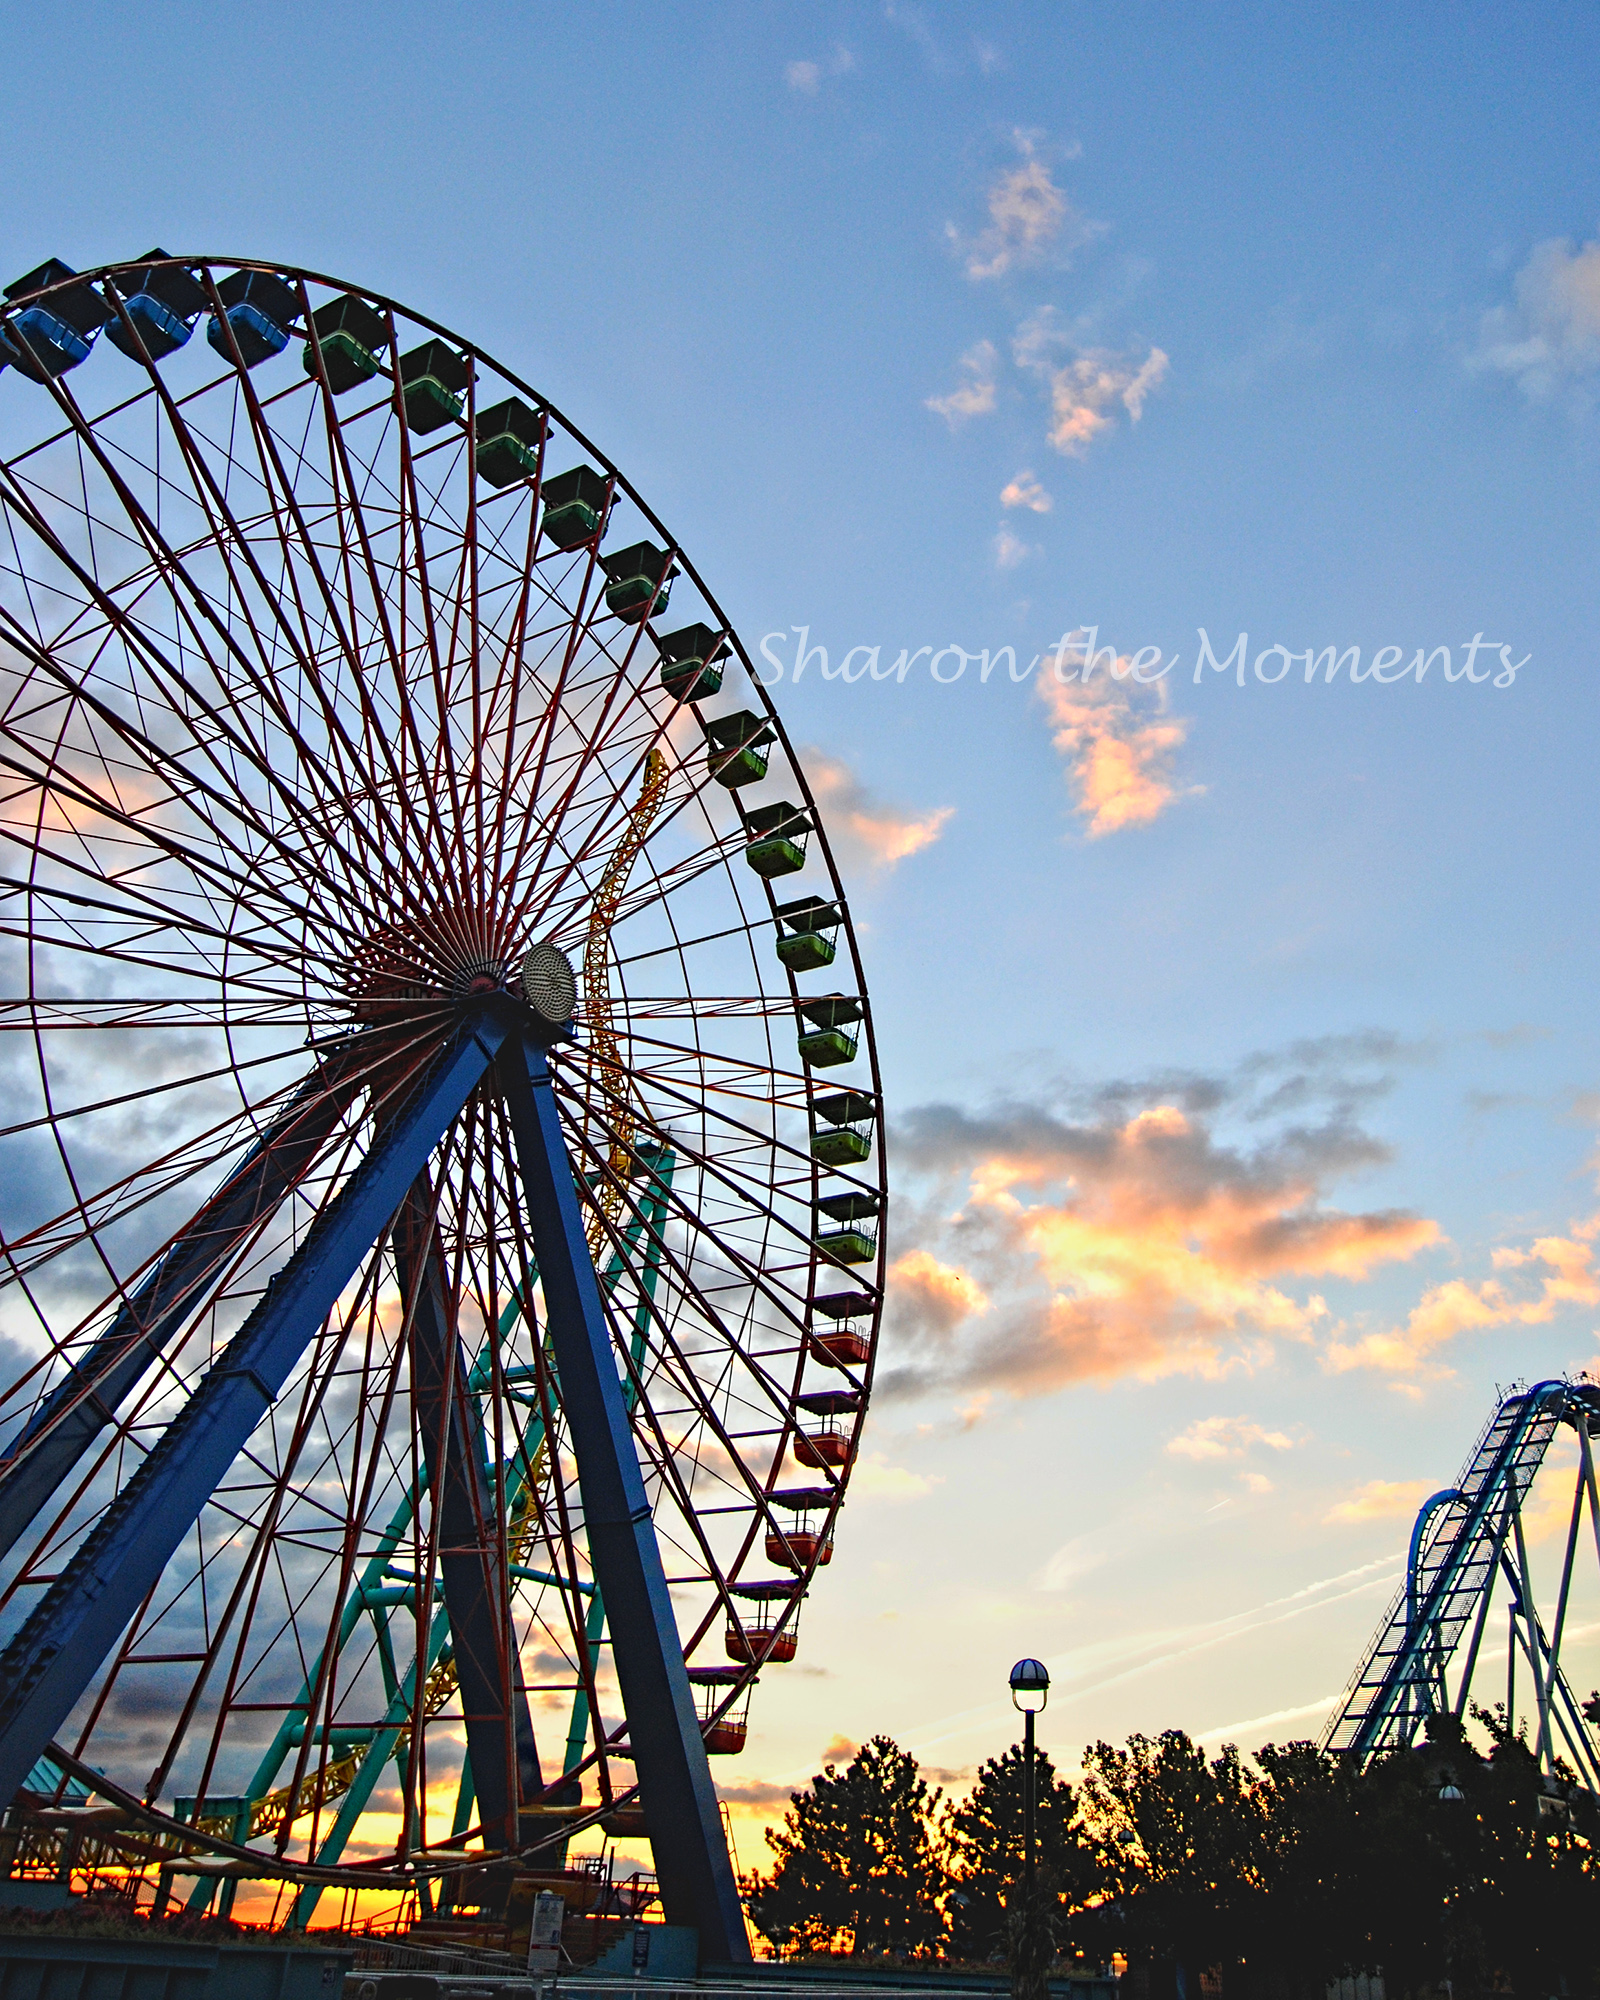 Favorite Photo Friday in Cedar Point Sandusky Ohio Giant Ferris Wheel|Sharon the Moments Blog